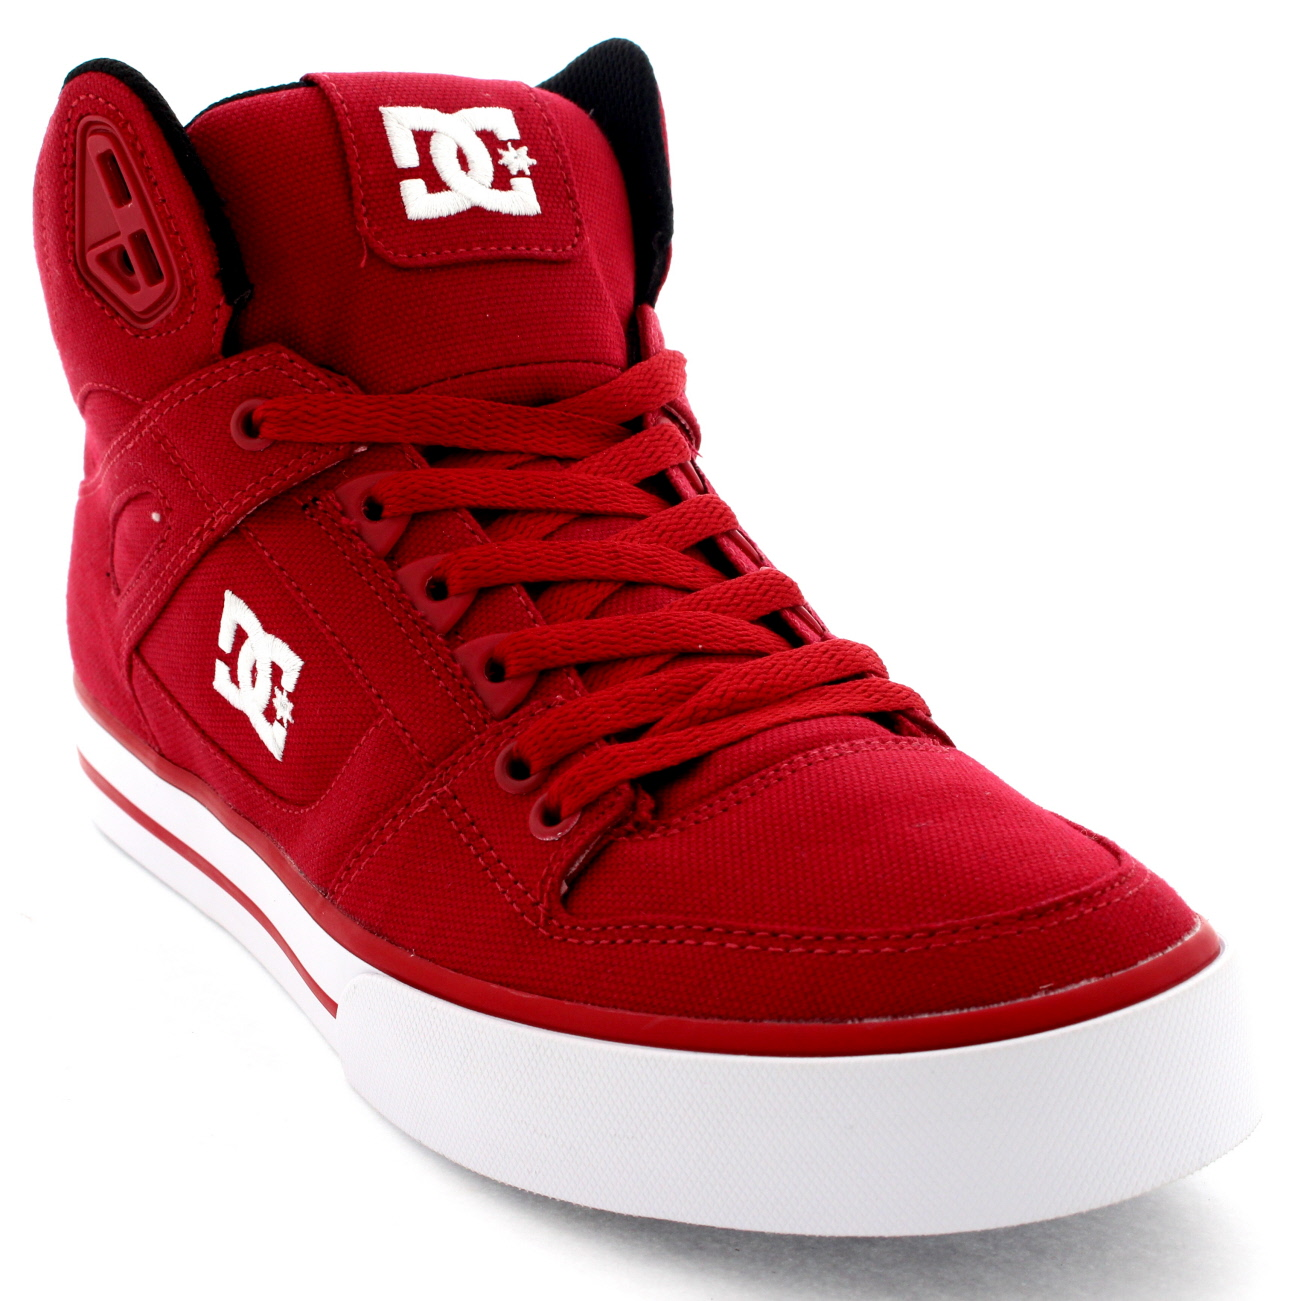 Dc Shoes High Tops Mens In Black